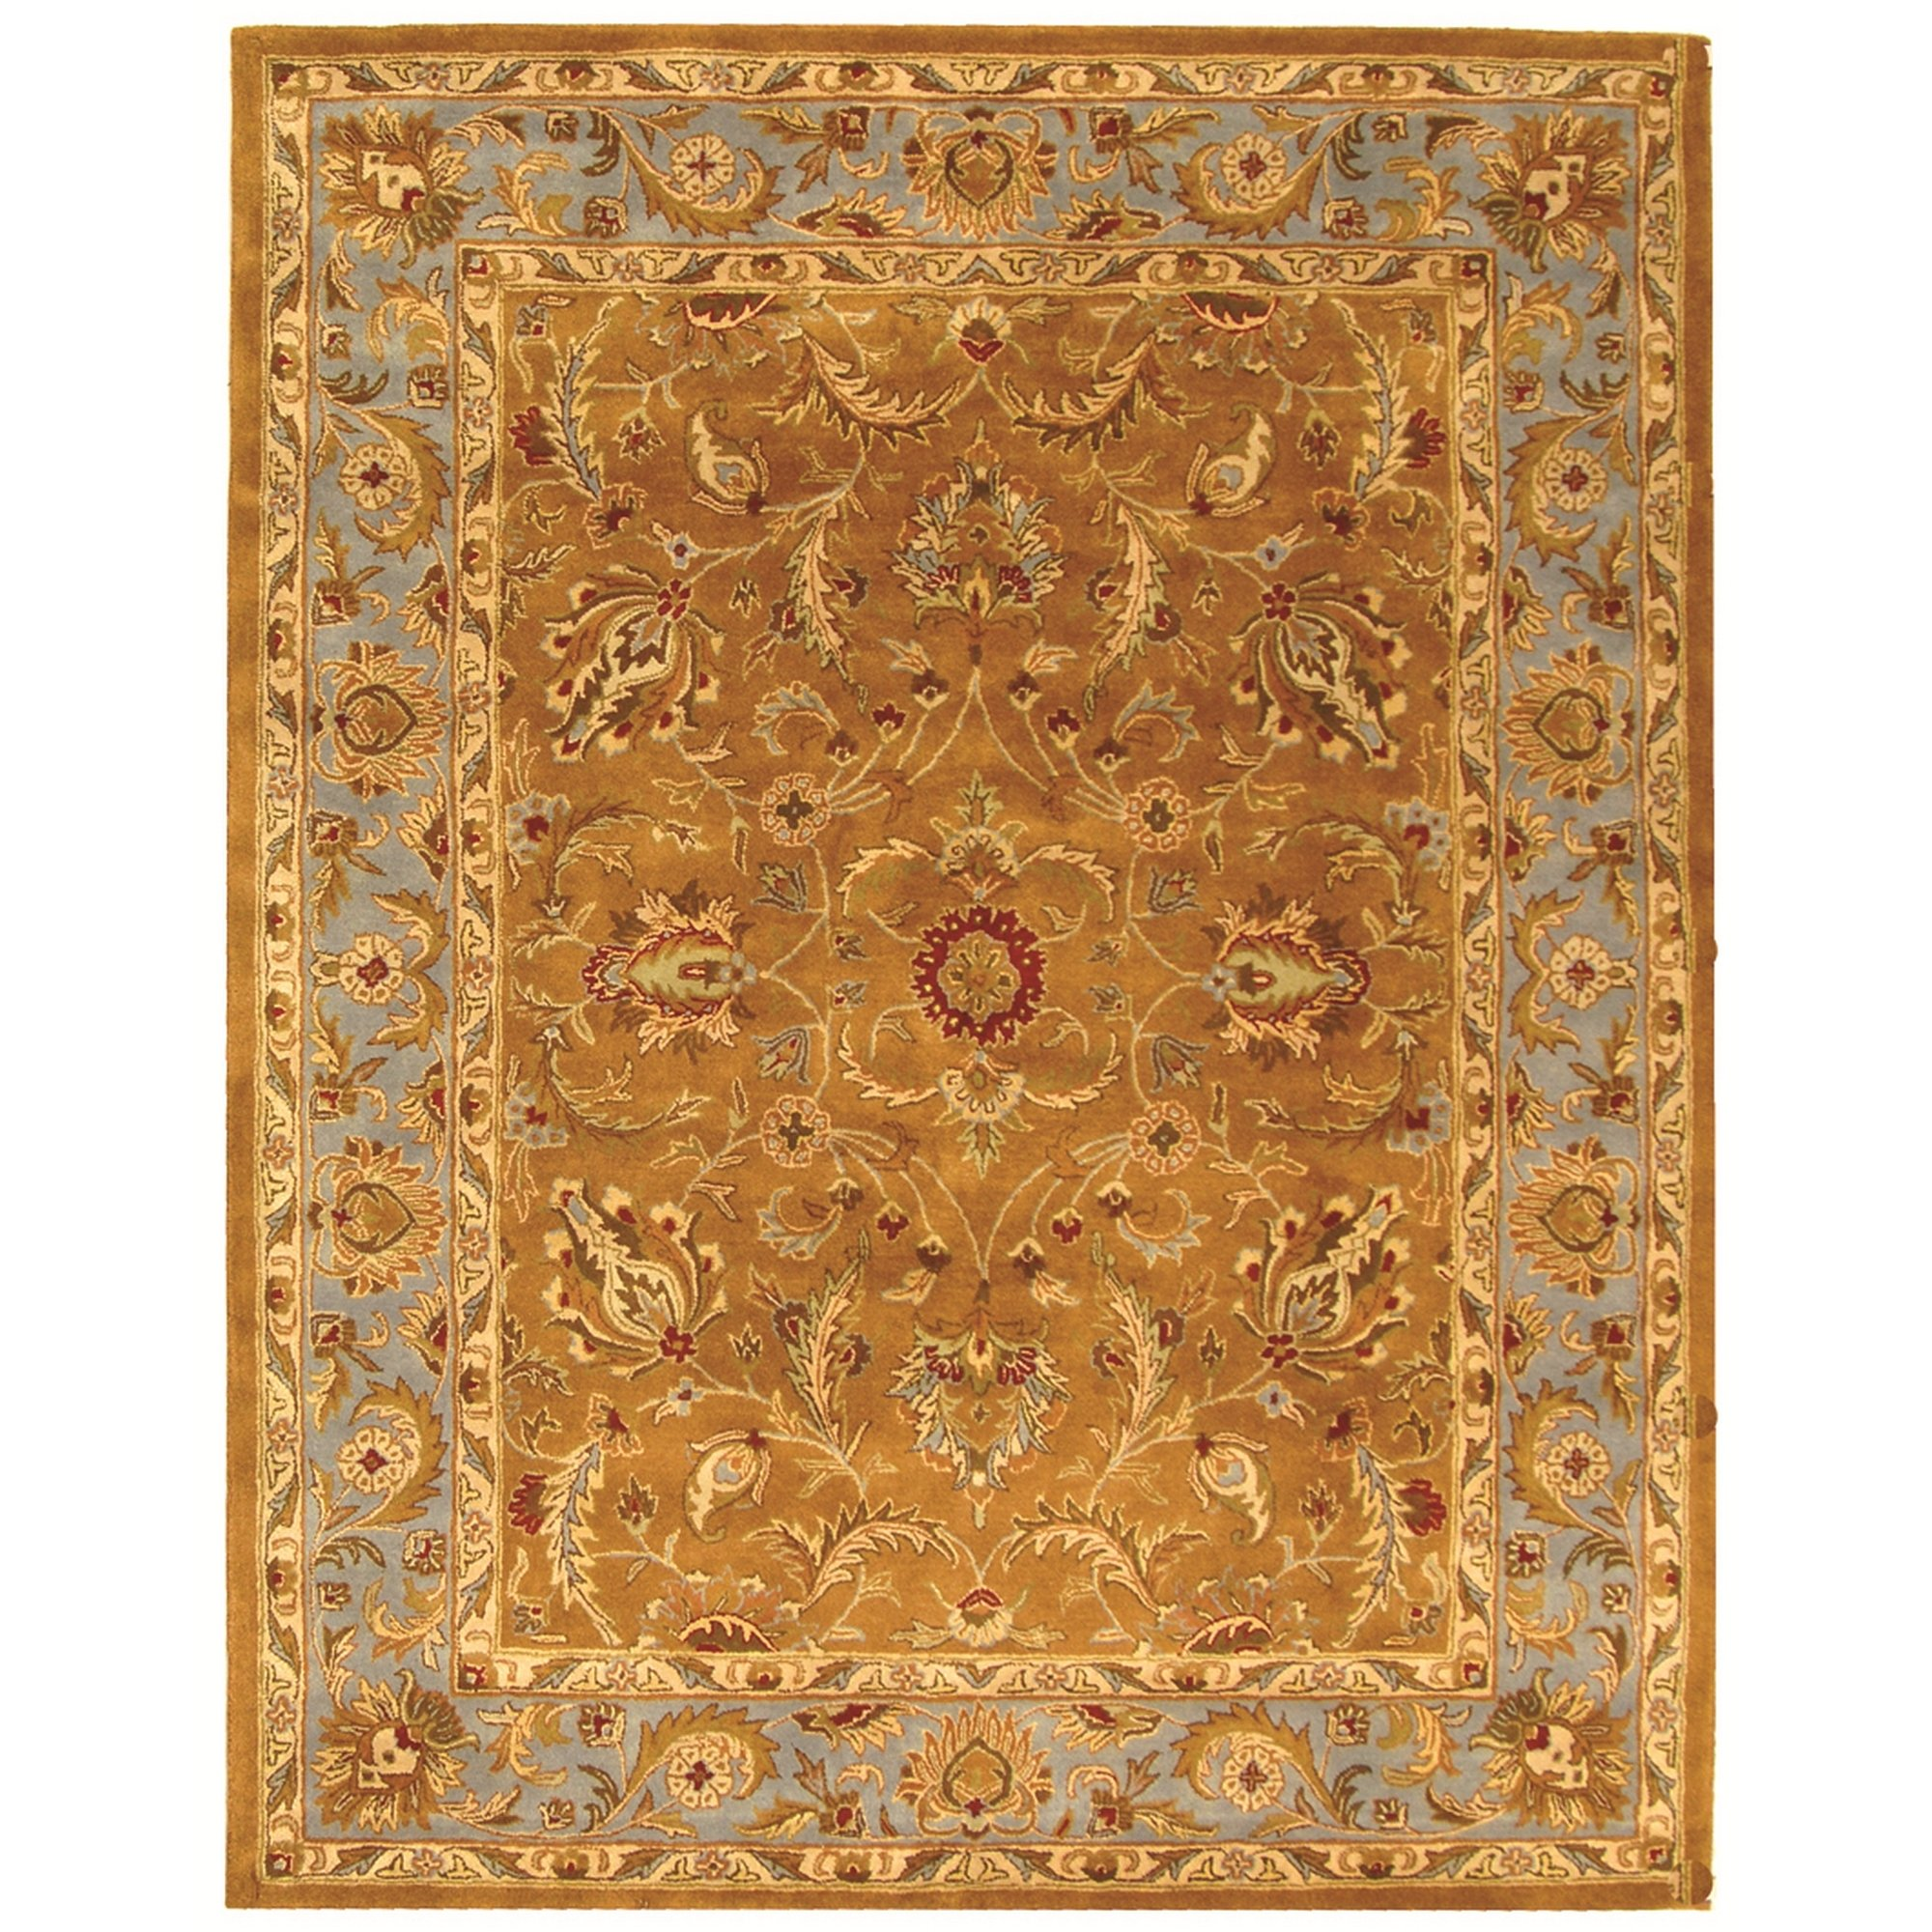 Safavieh Heritage Collection HG812A Handcrafted Traditional Oriental Brown and Blue Wool Area Rug (9' x 12')